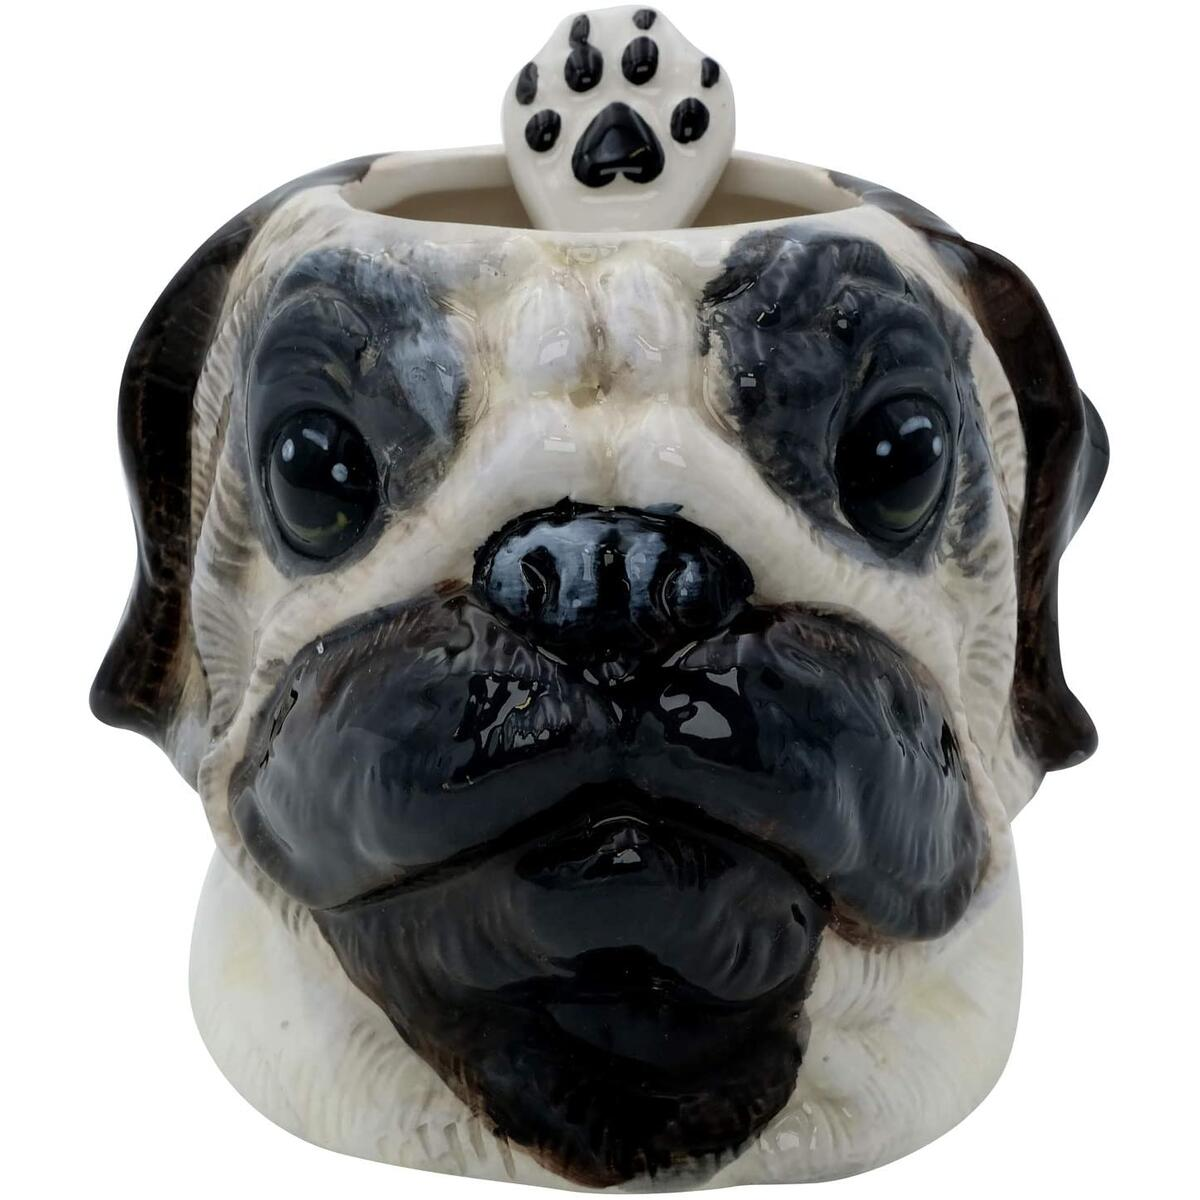 3D Hand Painted Dog Coffee Tea Ceramic Mug (Cocker Spaniel, Pug, Yorkshire Terrier, Dachshund Only)